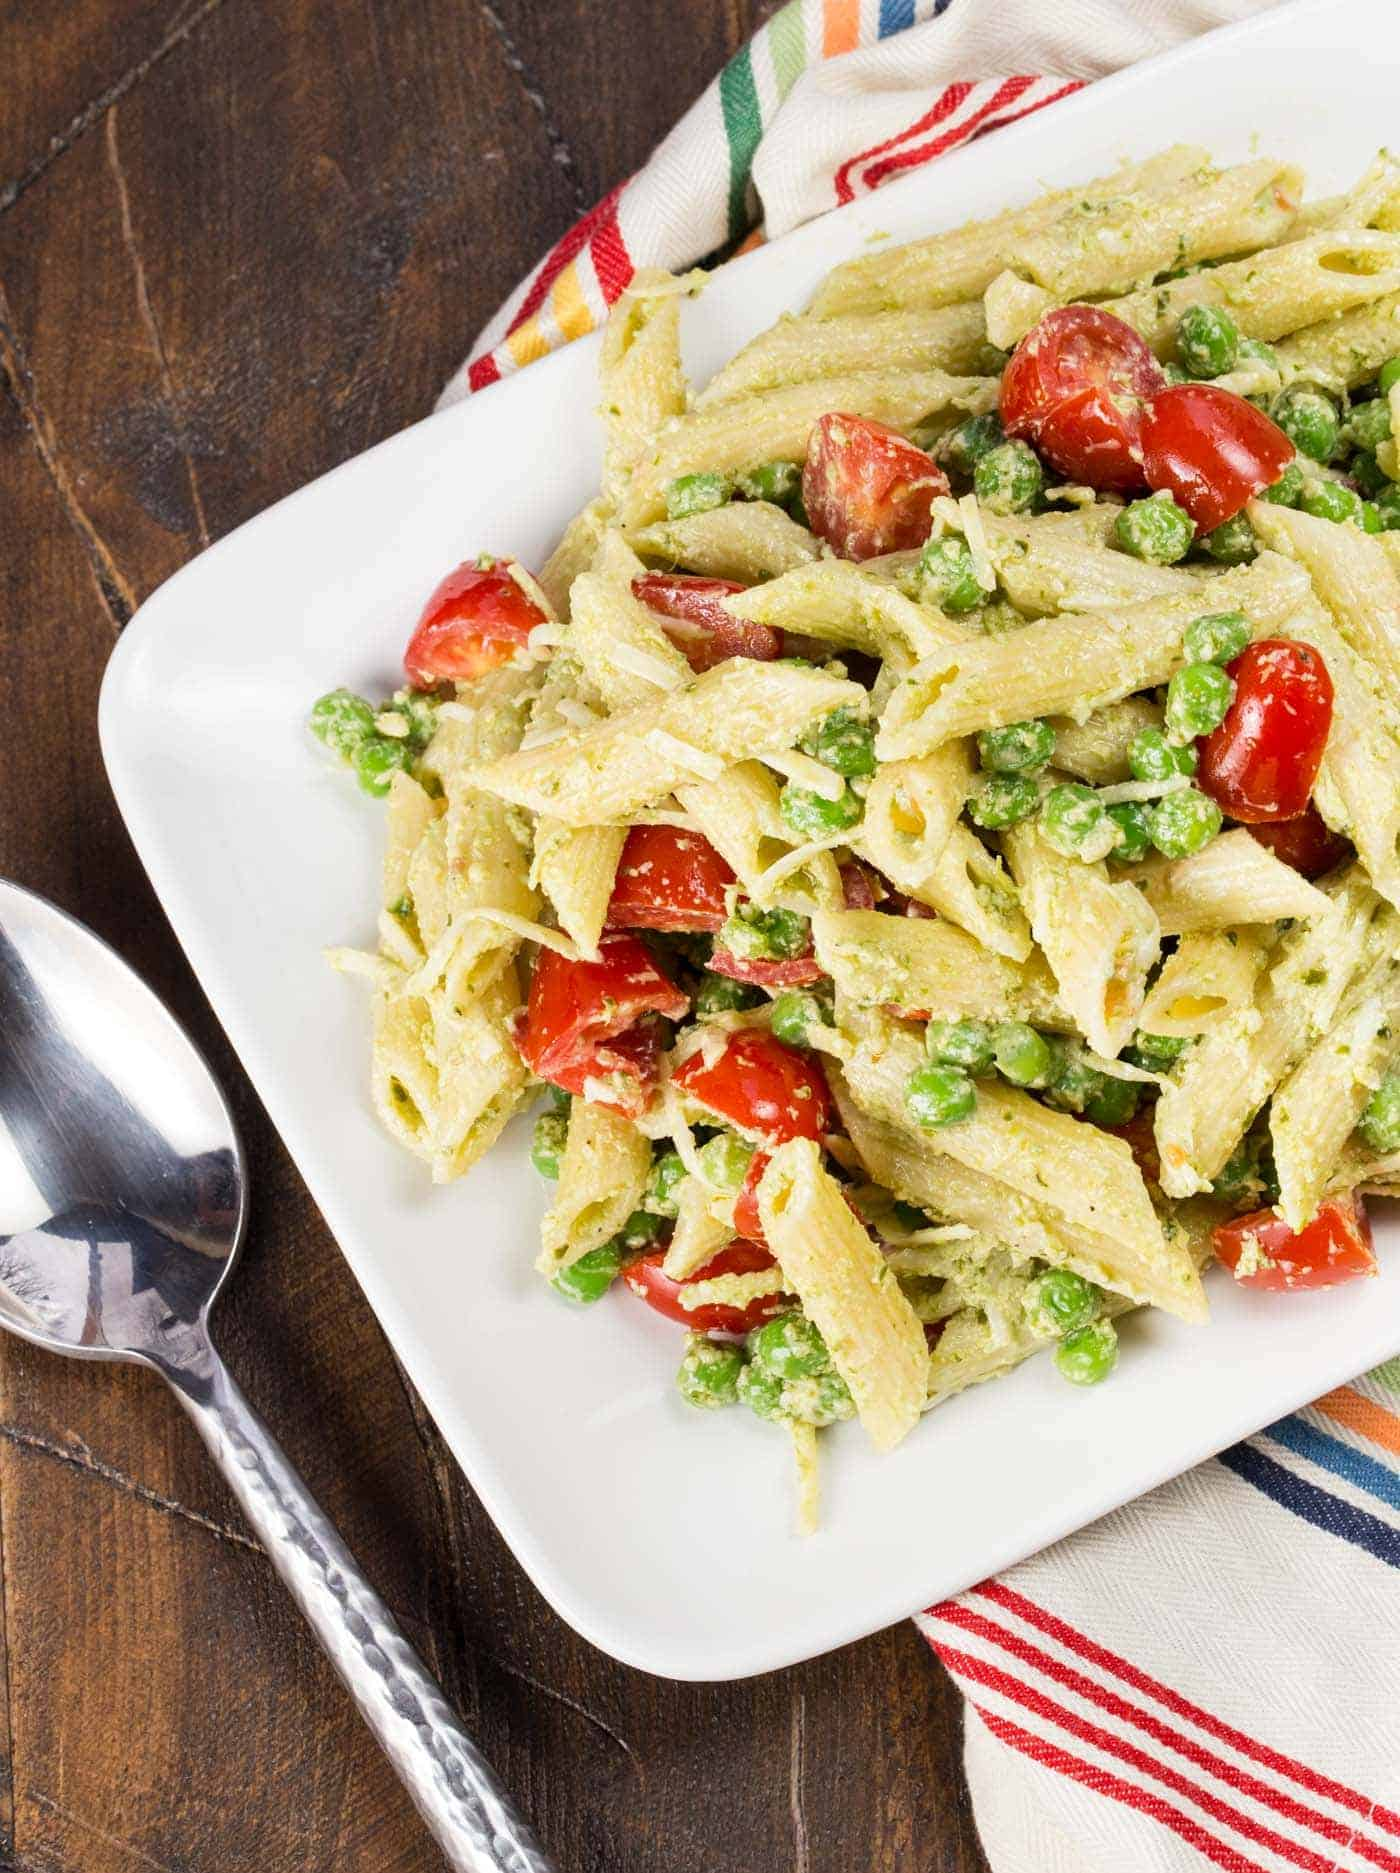 This Pesto Pasta Salad with Peas is filled with tomatoes & pine nuts and is the perfect side dish to anything that comes off the grill.